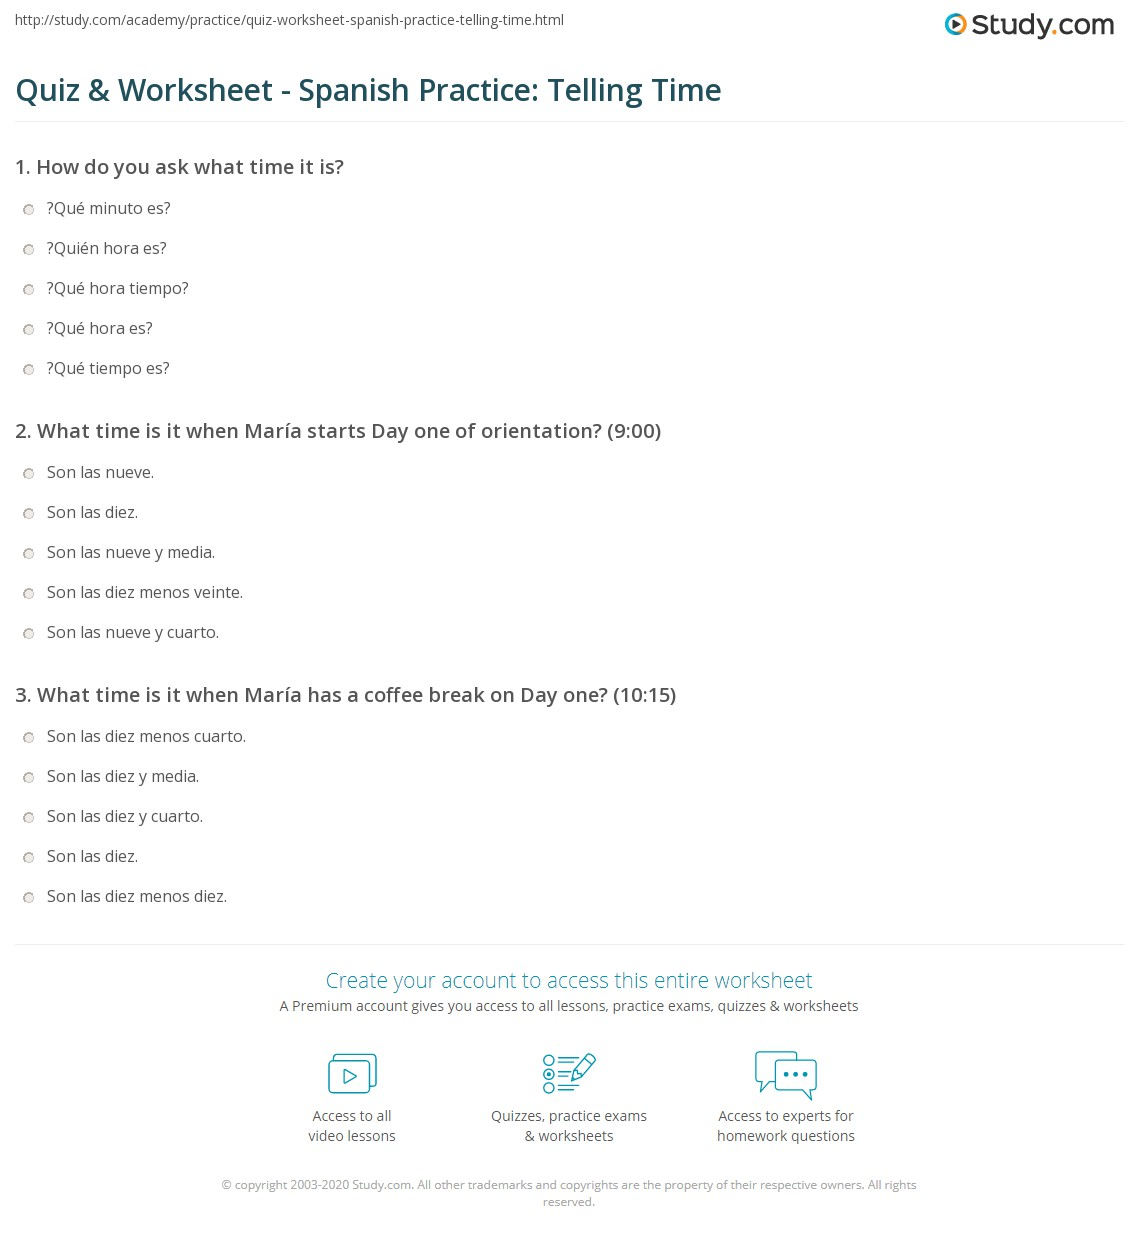 Printables Telling Time In Spanish Worksheets With Answers quiz worksheet spanish practice telling time study com print comprehension activity worksheet